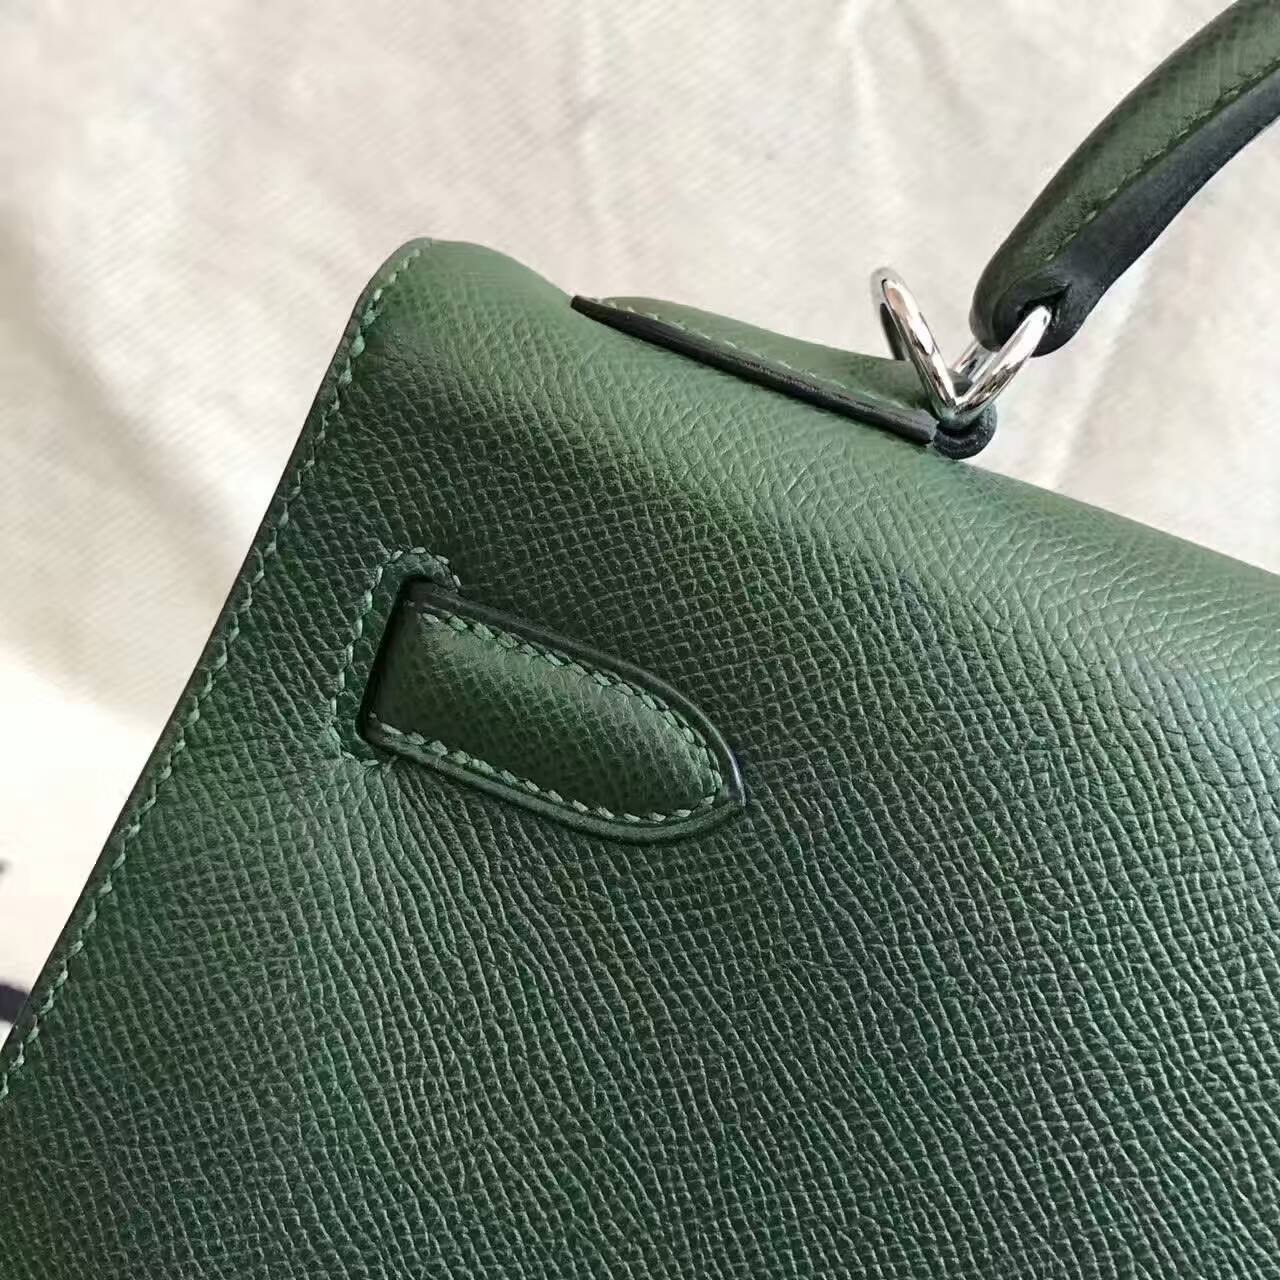 Discount Hermes 2Q English Green Epsom Leather Kelly Bag 32CM